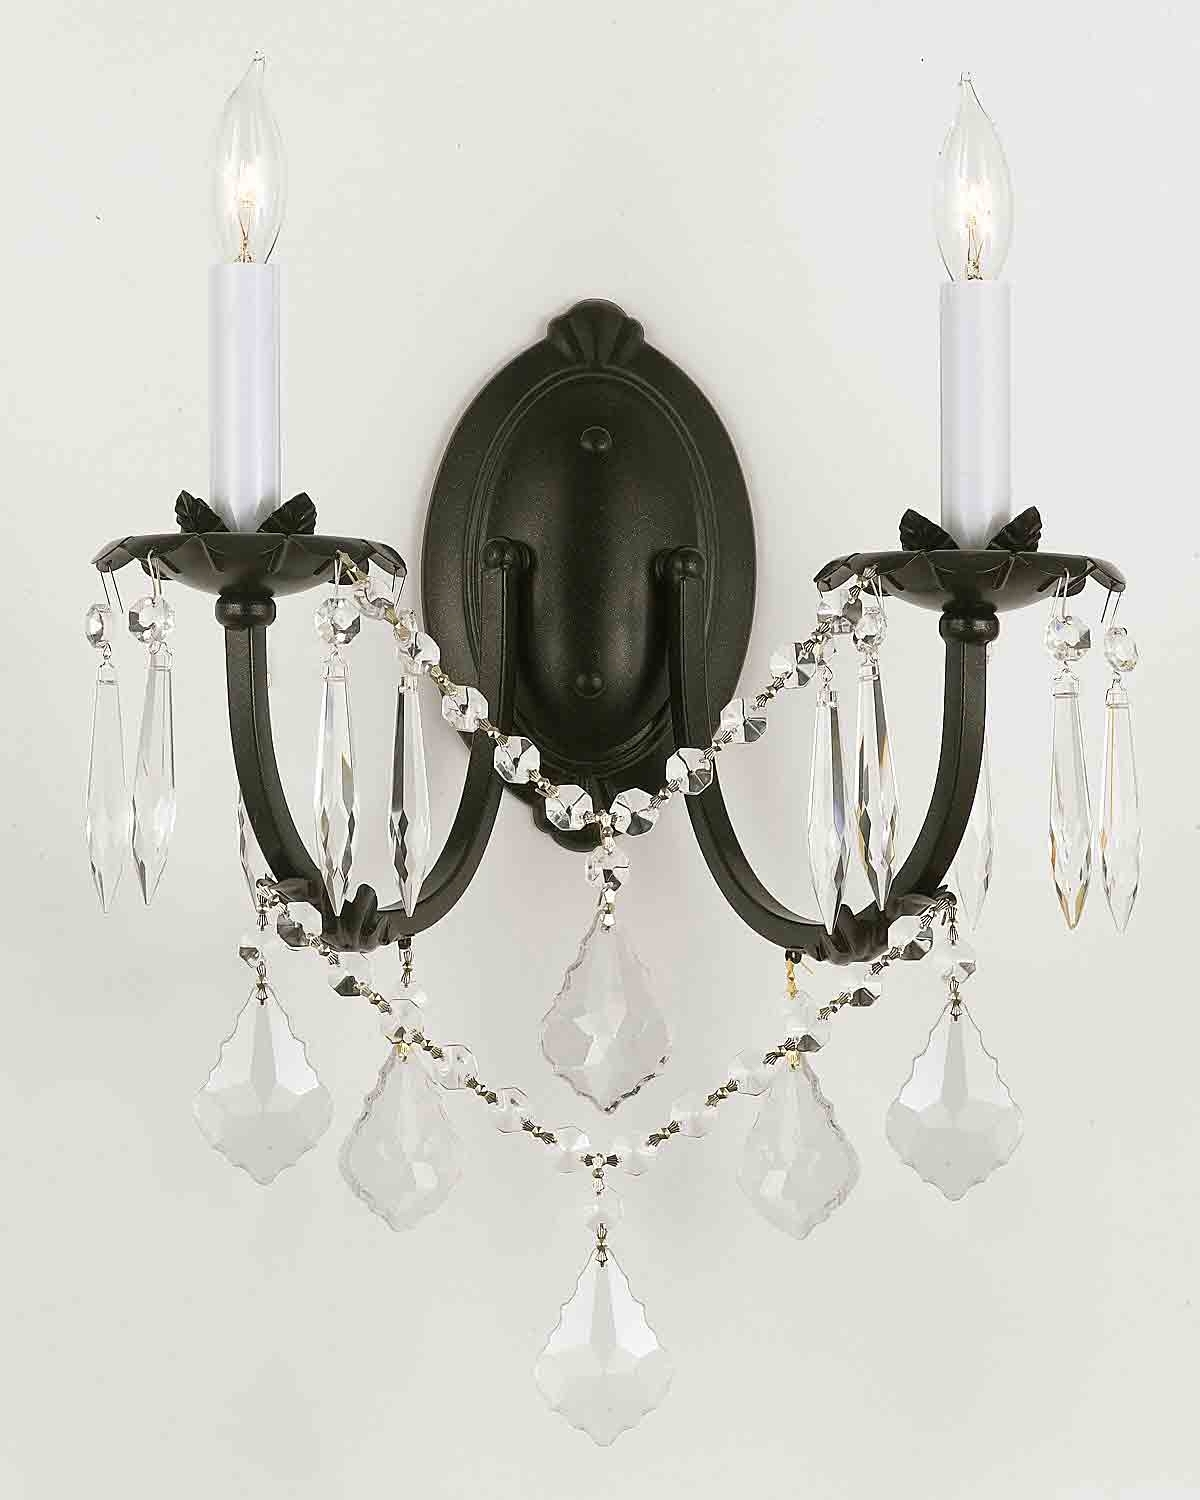 Latest Wall Mounted Chandelier Lighting With Regard To Fresh Elegant Wall Mounted Chandelier Lighting Hk1L1 # (View 7 of 20)